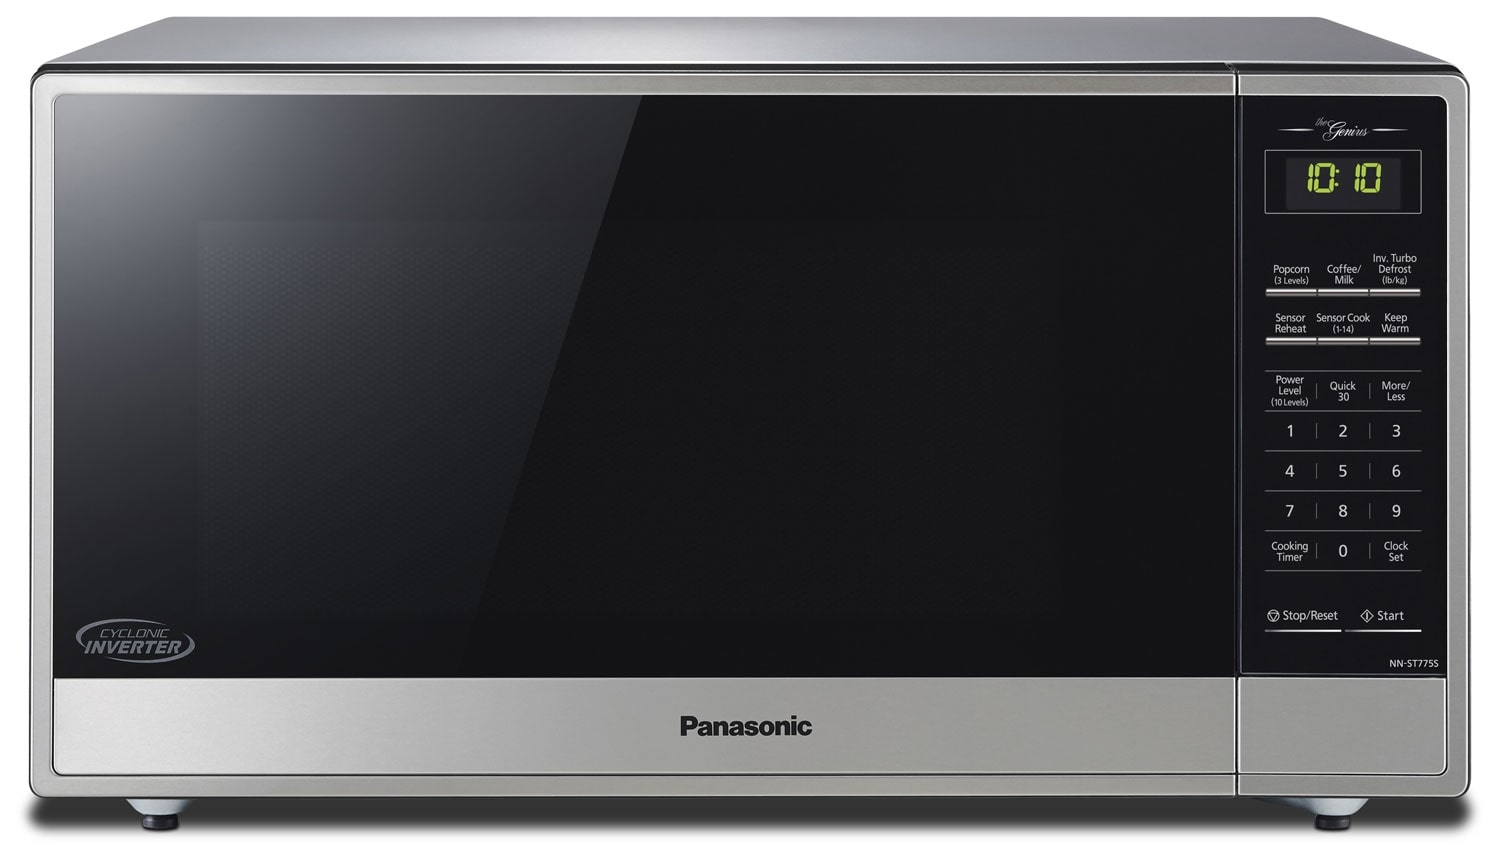 Panasonic® 1.6 Cu. Ft. Countertop Microwave - Stainless Steel